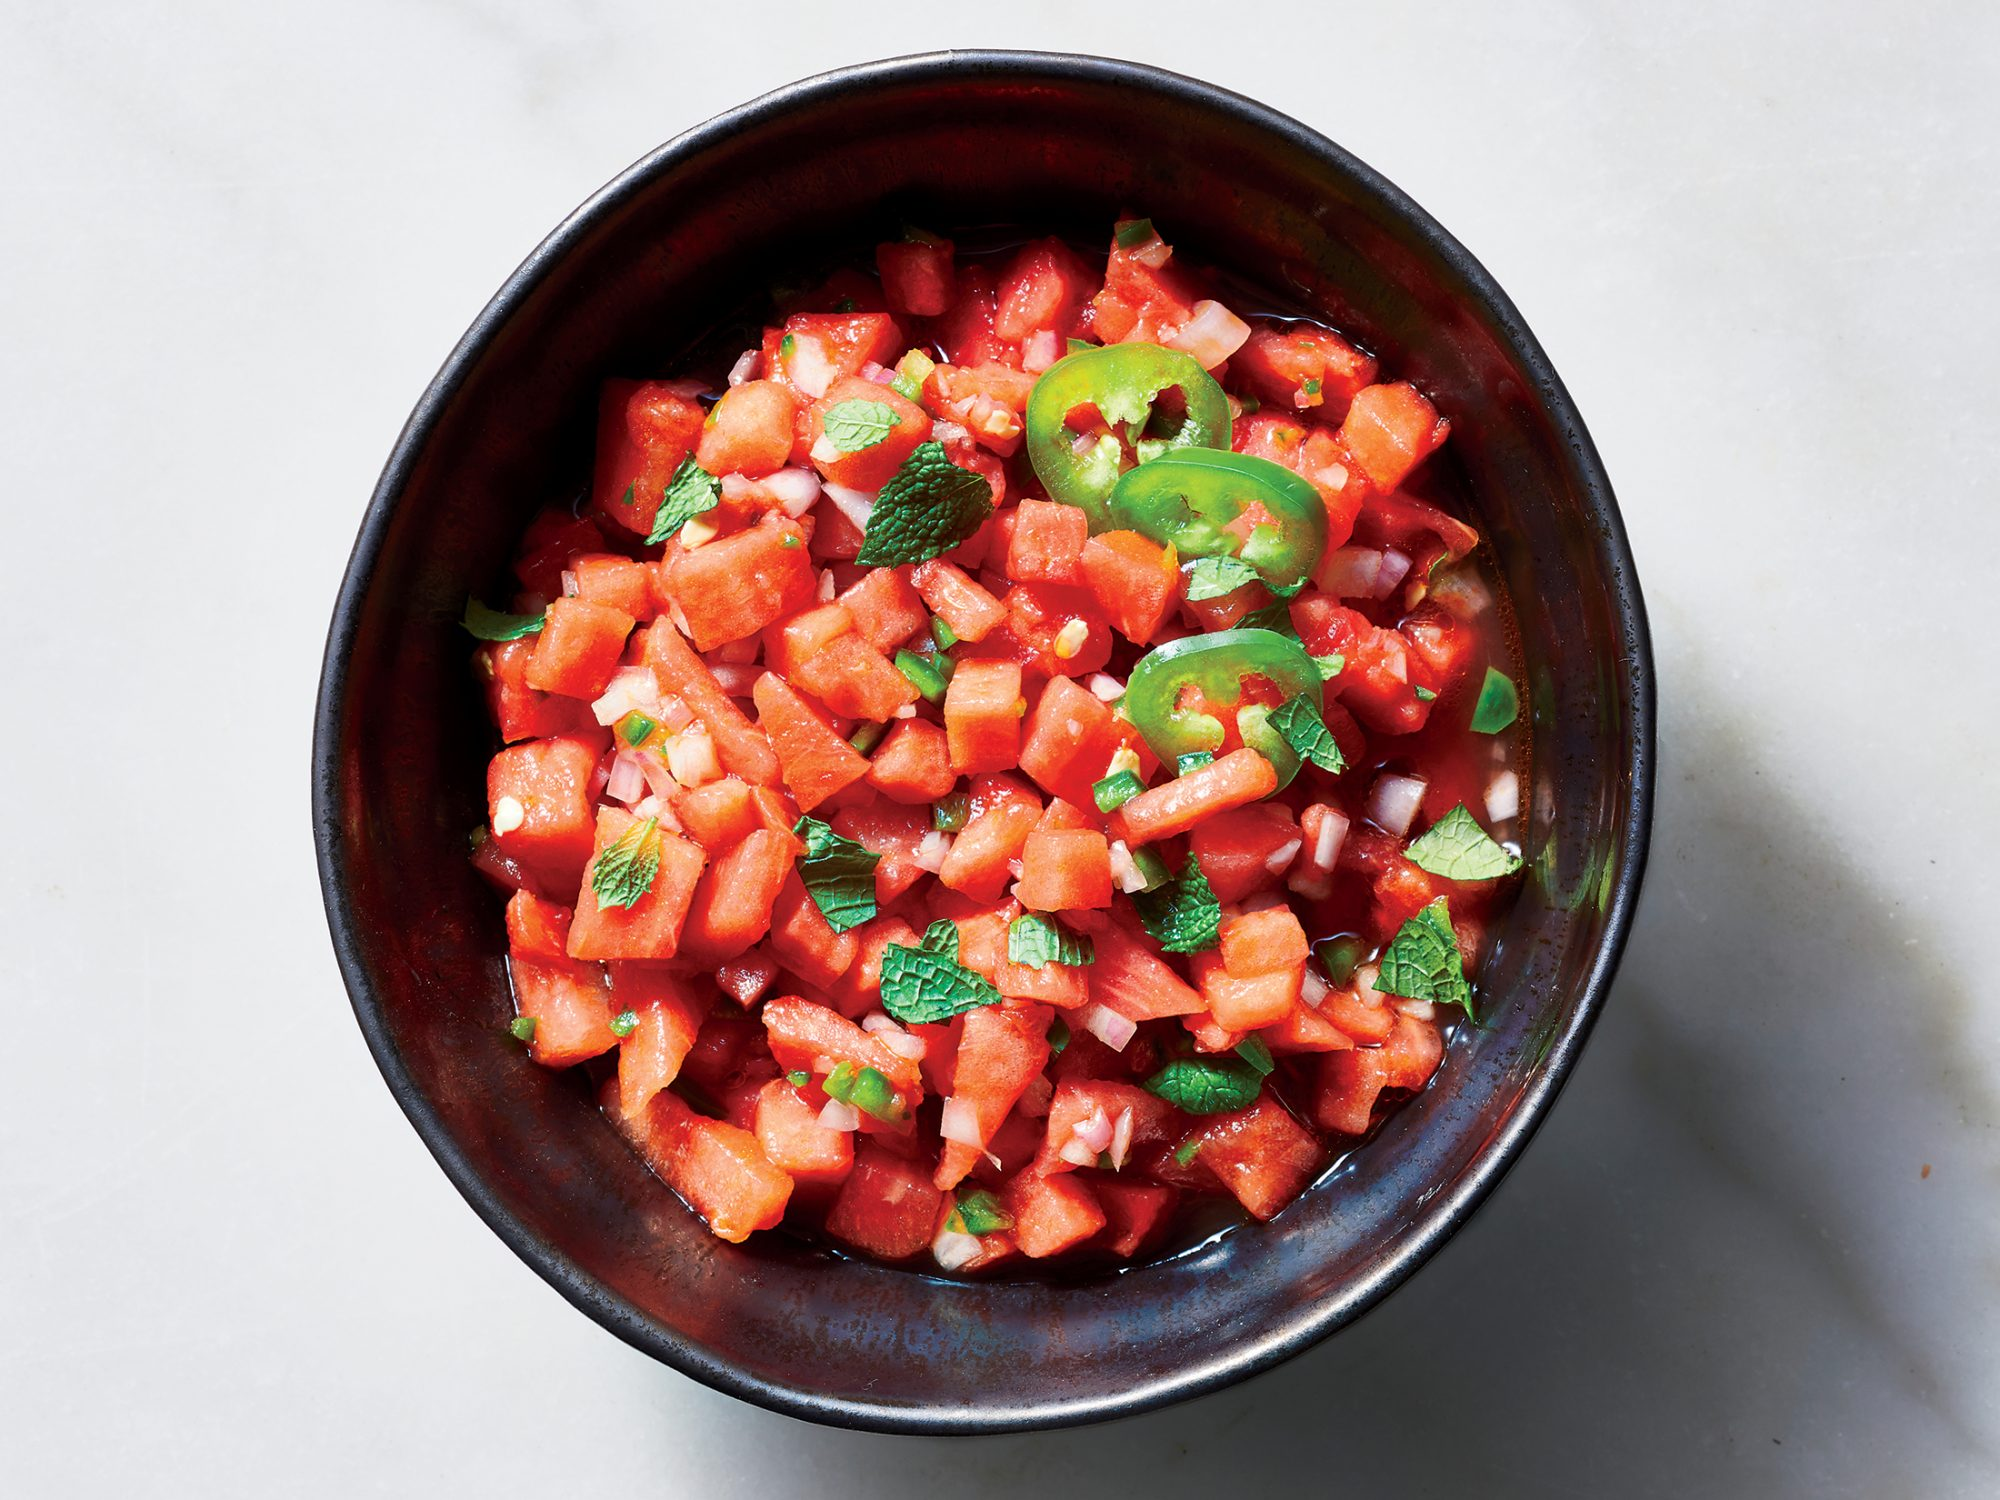 Watermelon-Jalapeño Relish